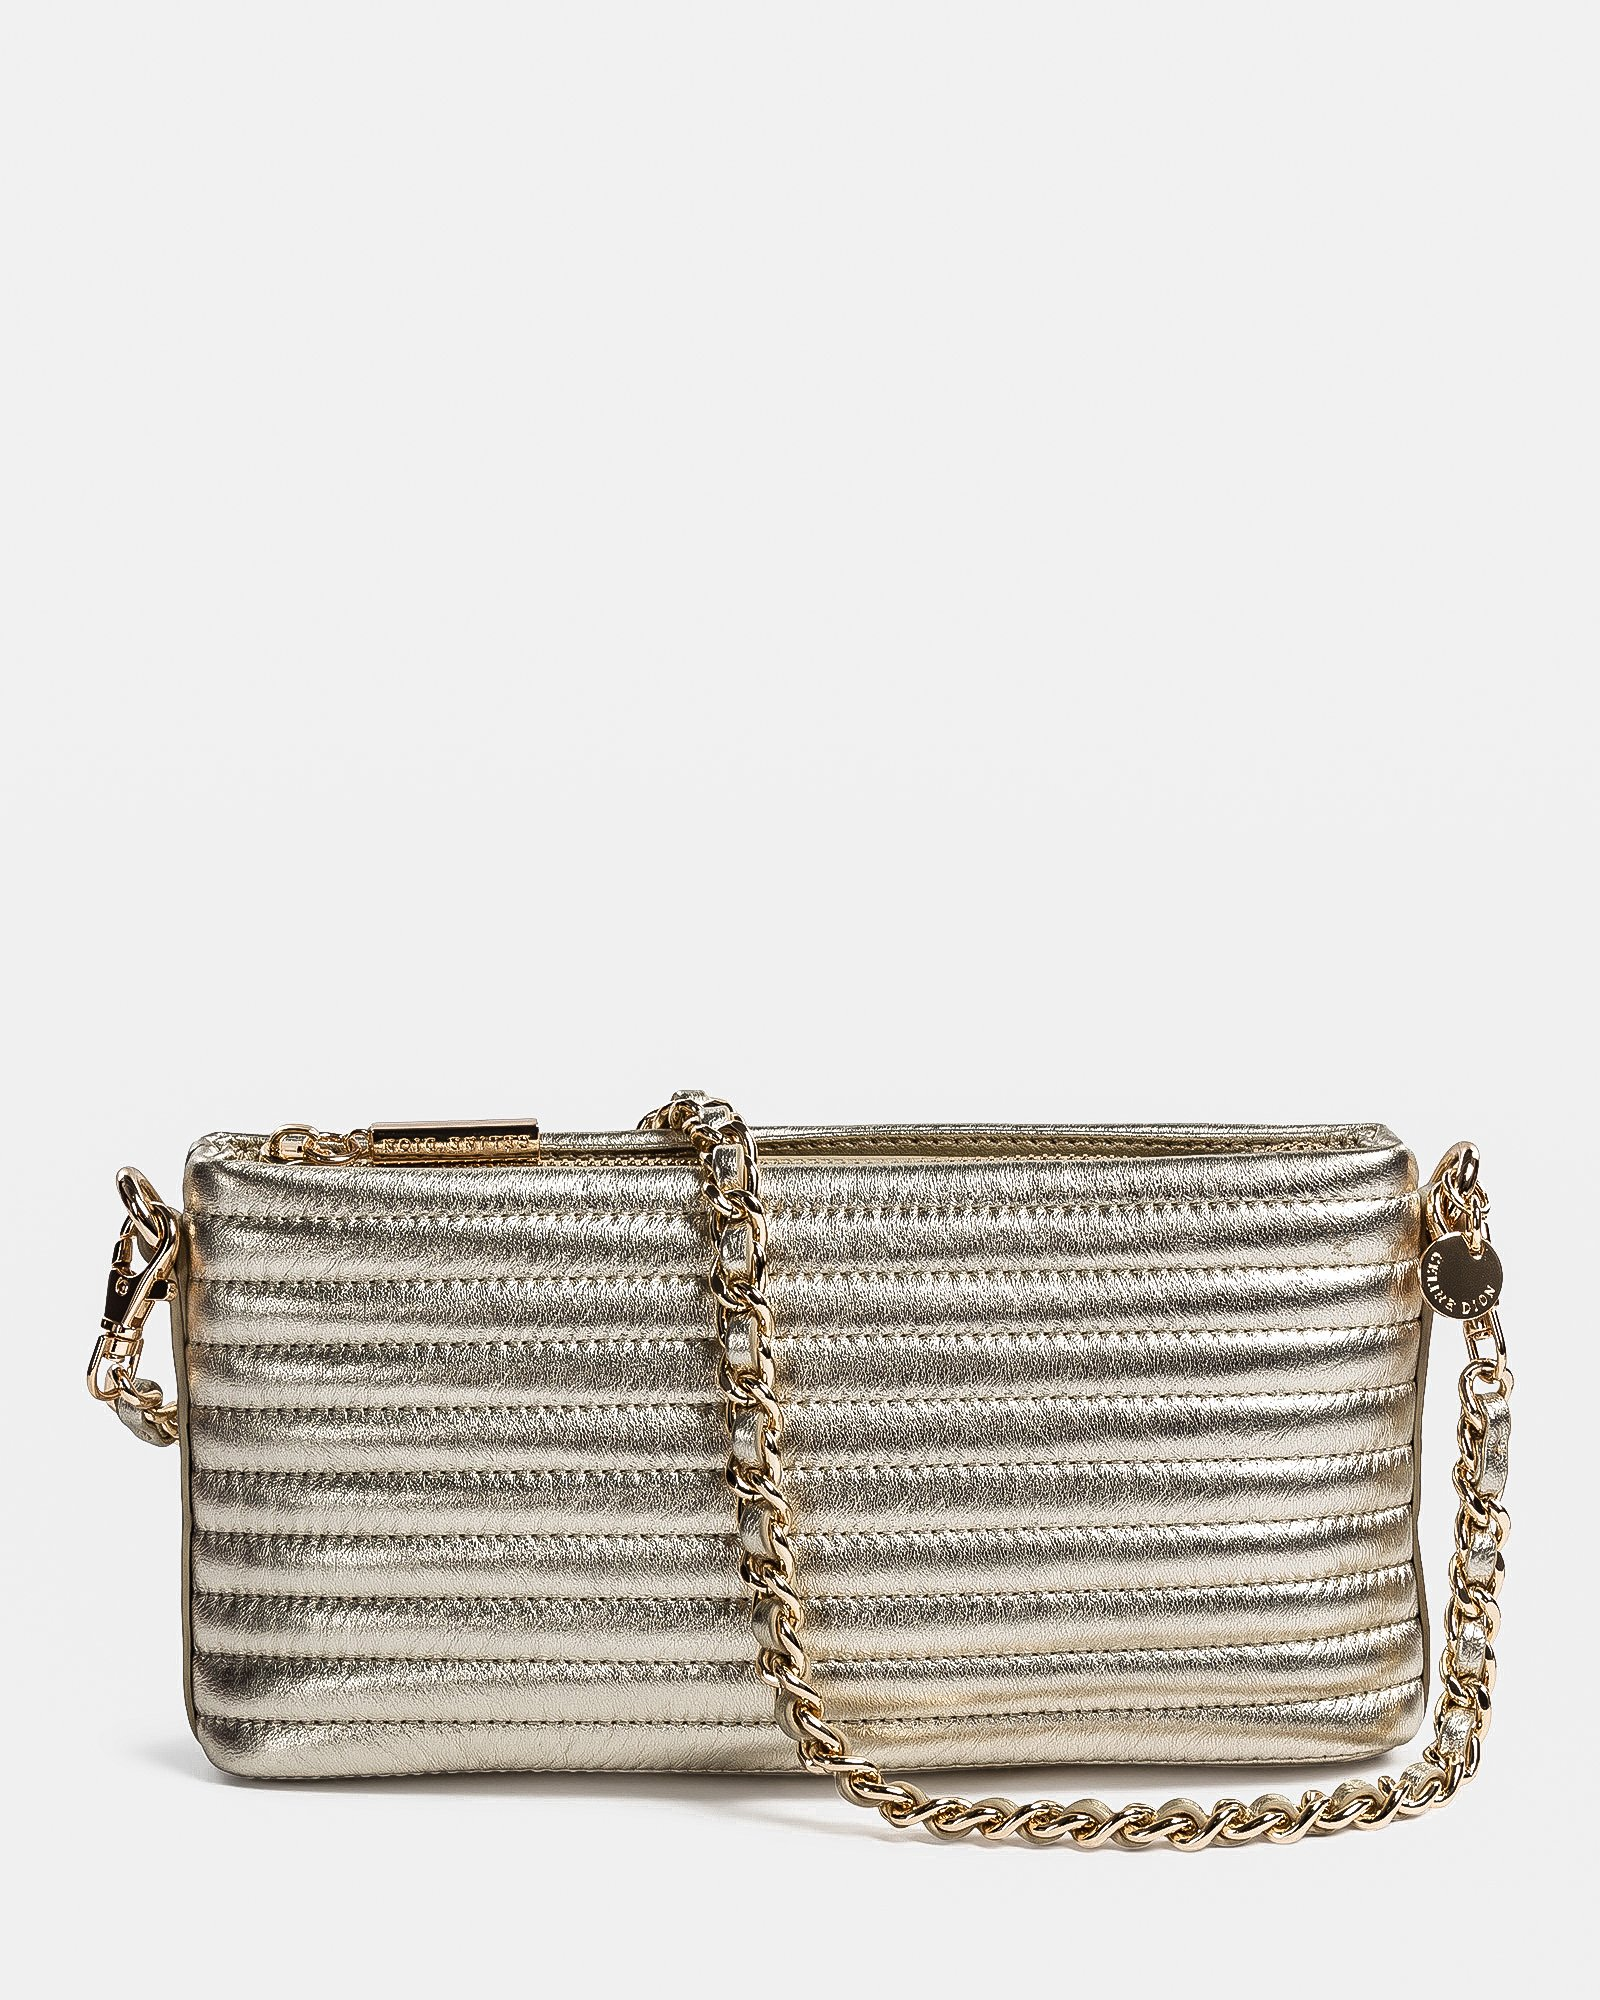 VIBRATO - Quilted leather crossbody with removable strap - GOLD - Céline Dion - Zoom